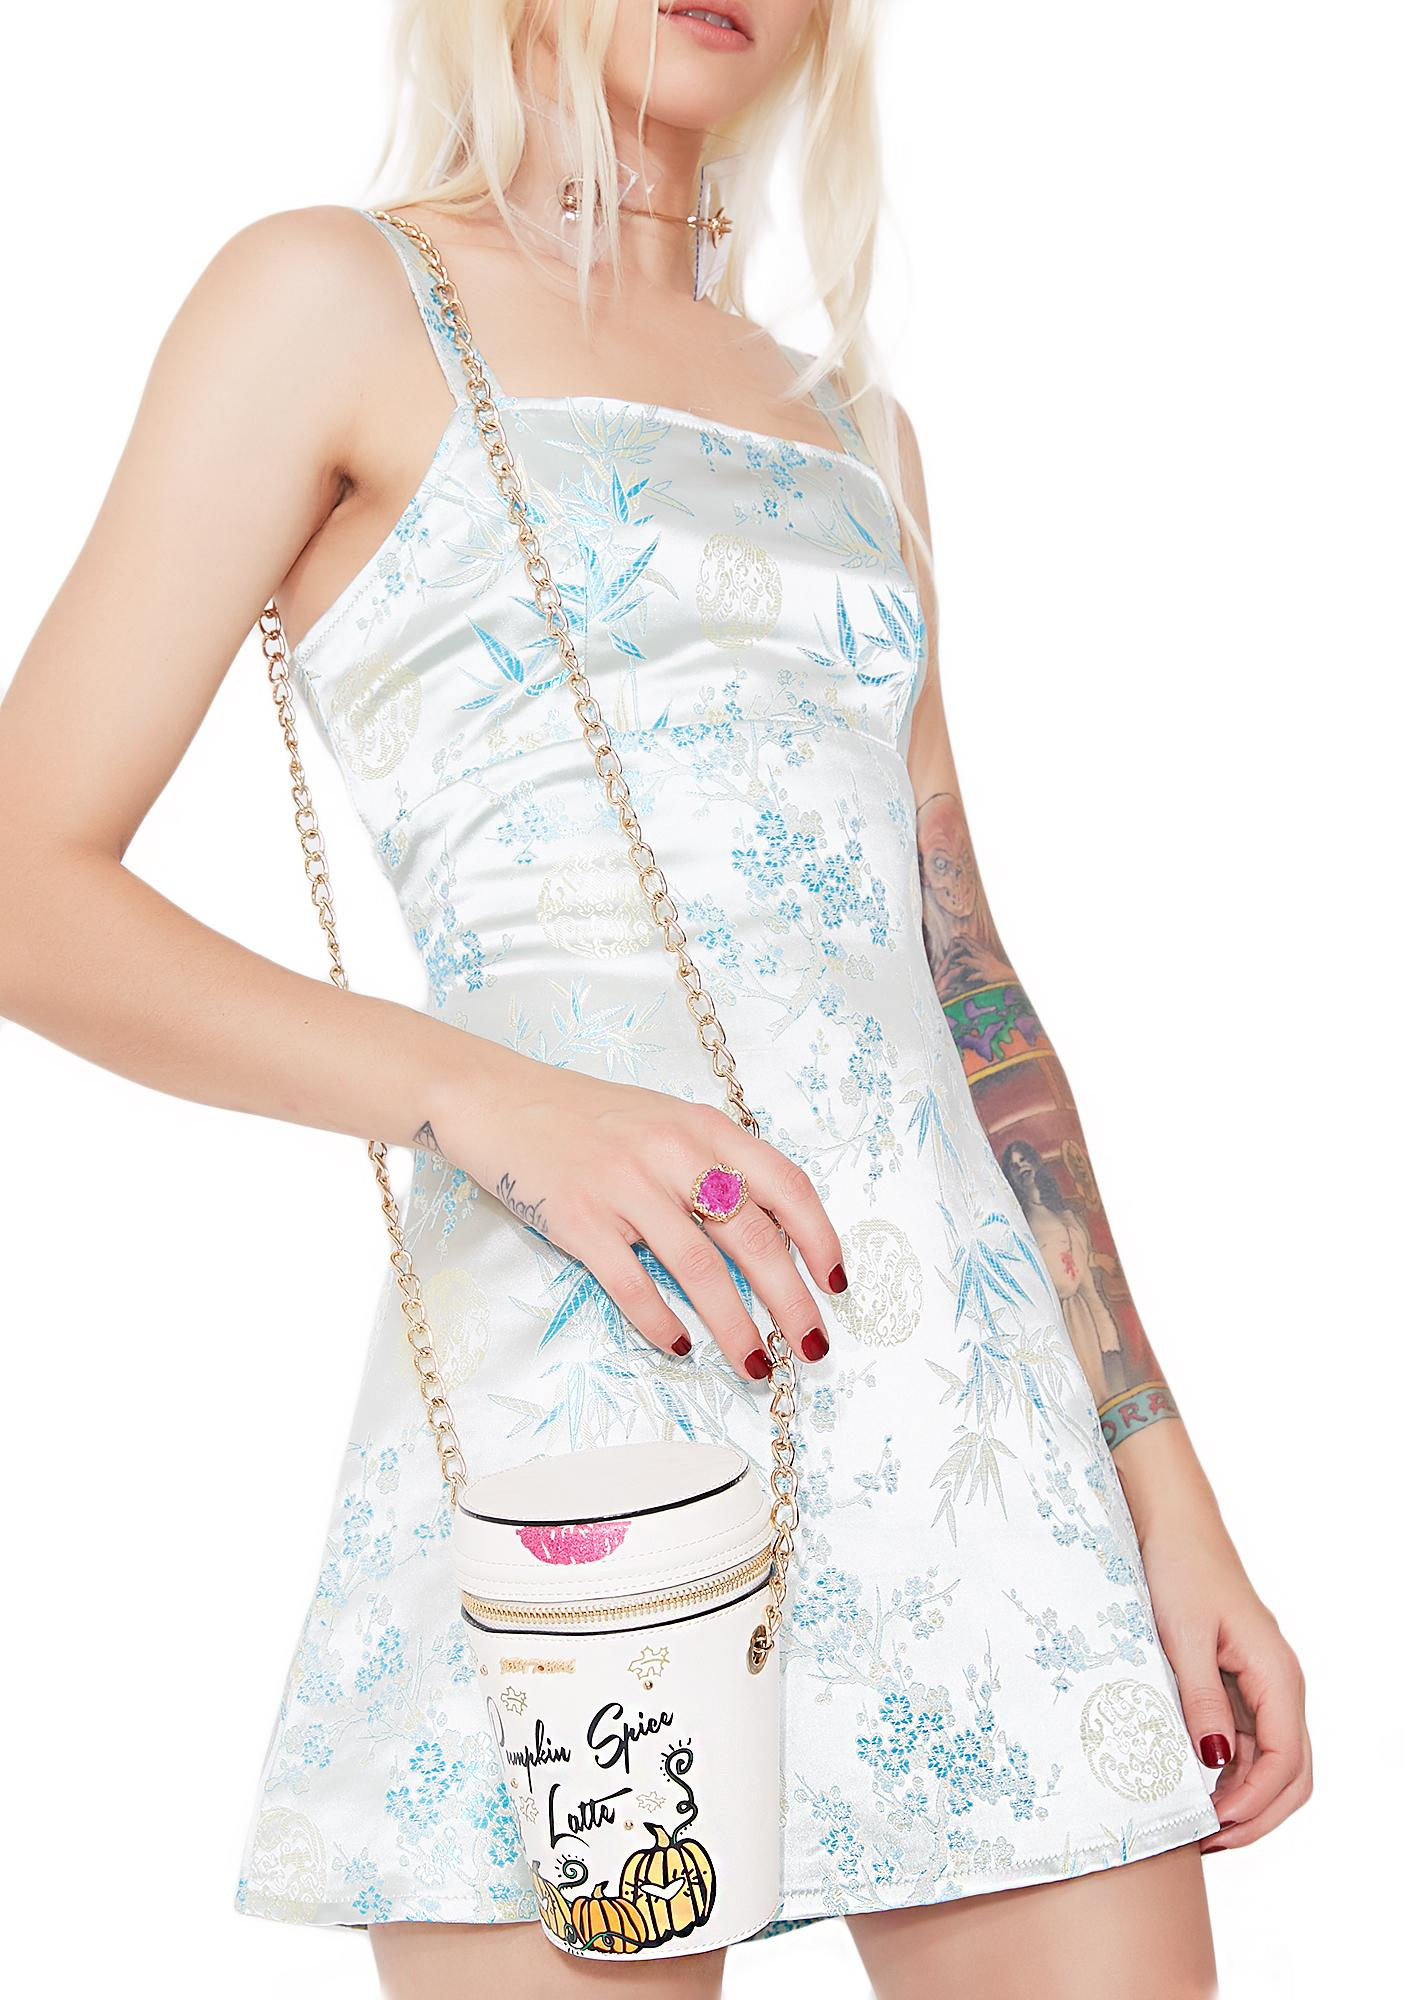 Betsey Johnson #Basic Crossbody